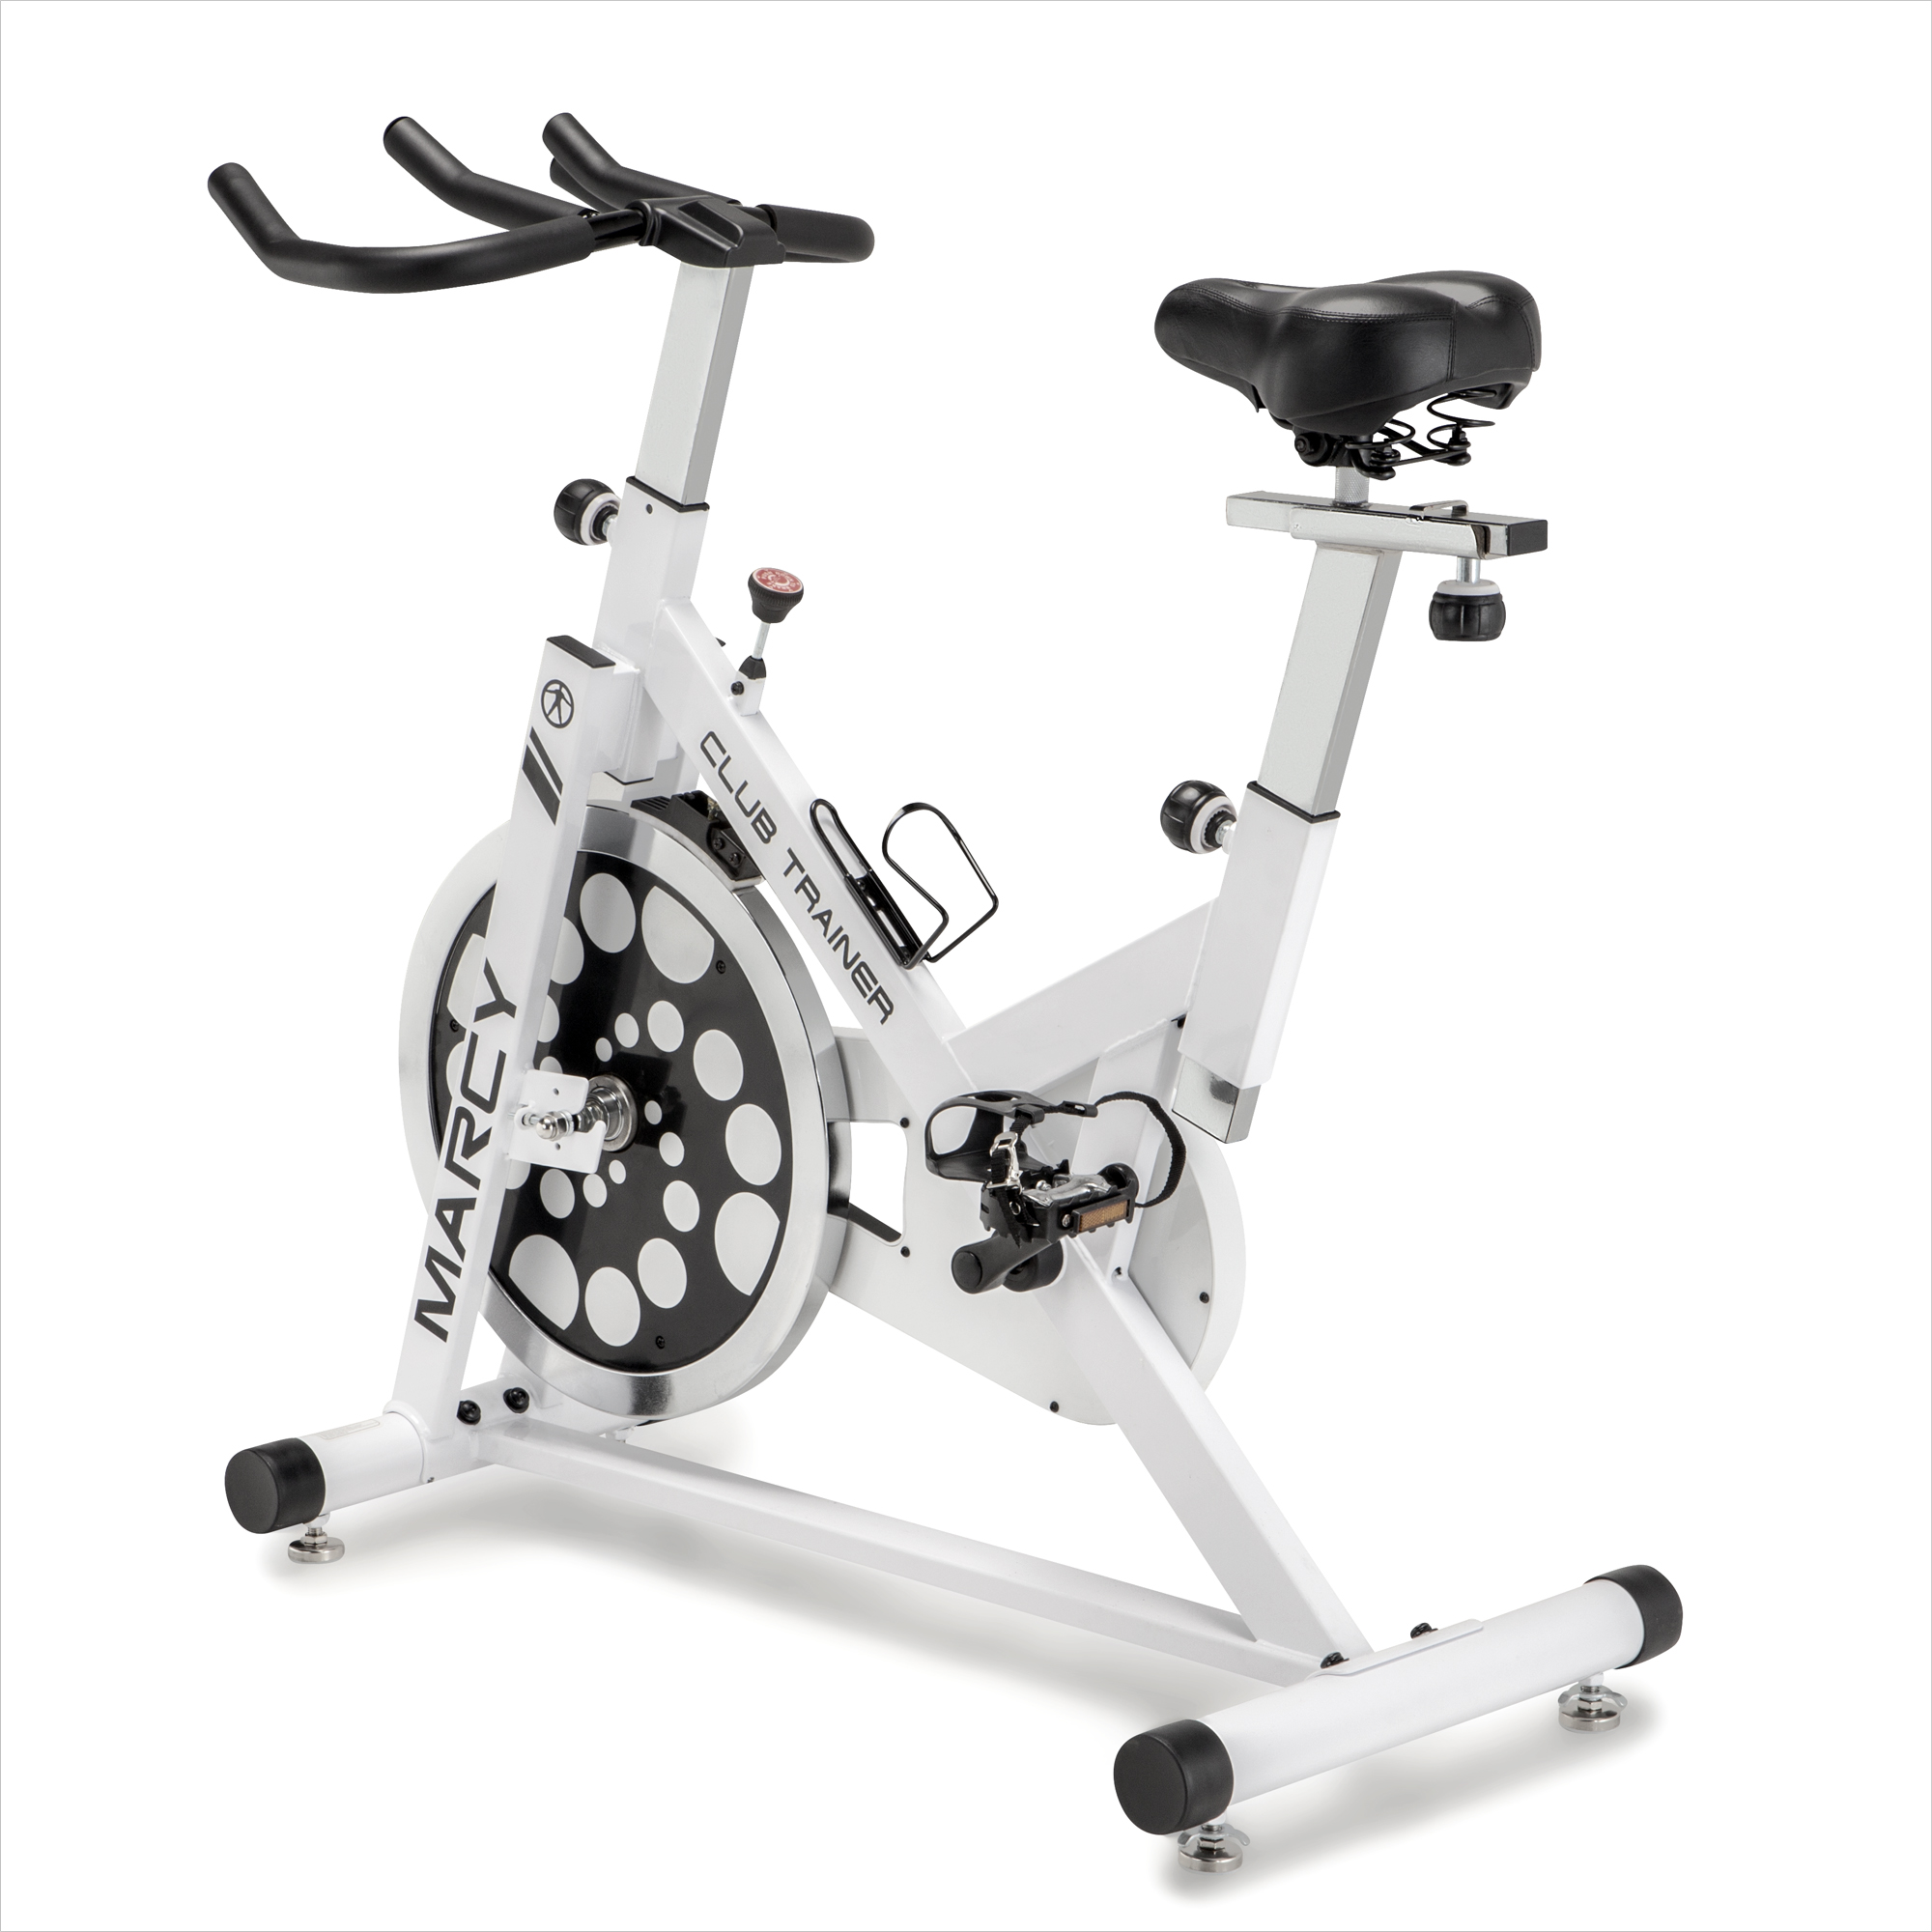 Details about Marcy XJ-5801 Club Revolution Indoor Home Gym Exercise Bike  Trainer, White/Black